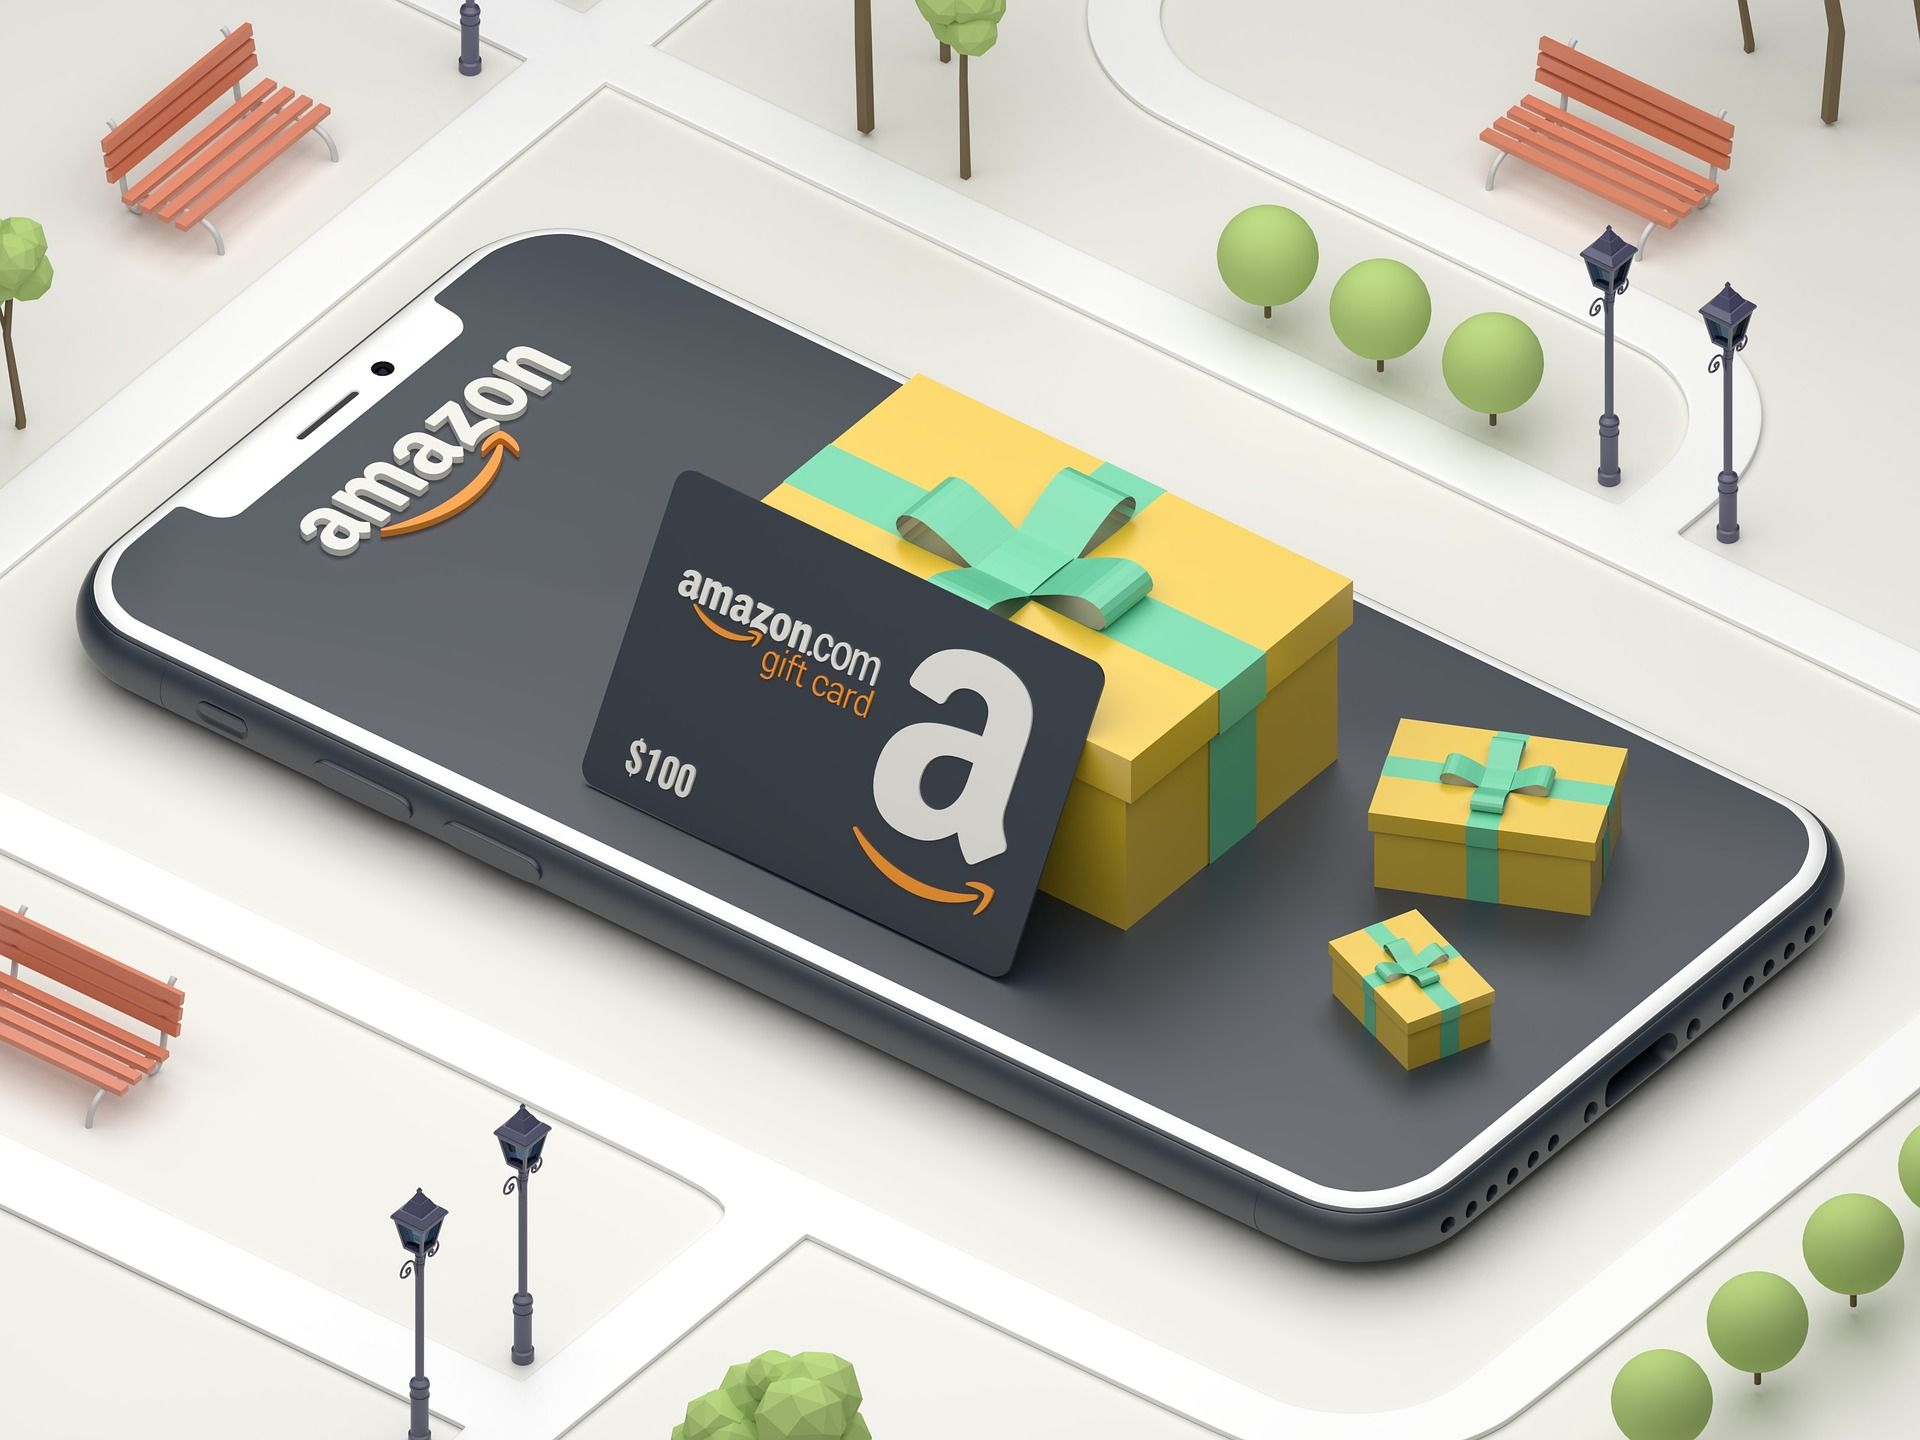 How To Buy Amazon Gift Card With Paypal Instantly 2020 Updated Amazon Gift Cards Gift Card Amazon Gifts